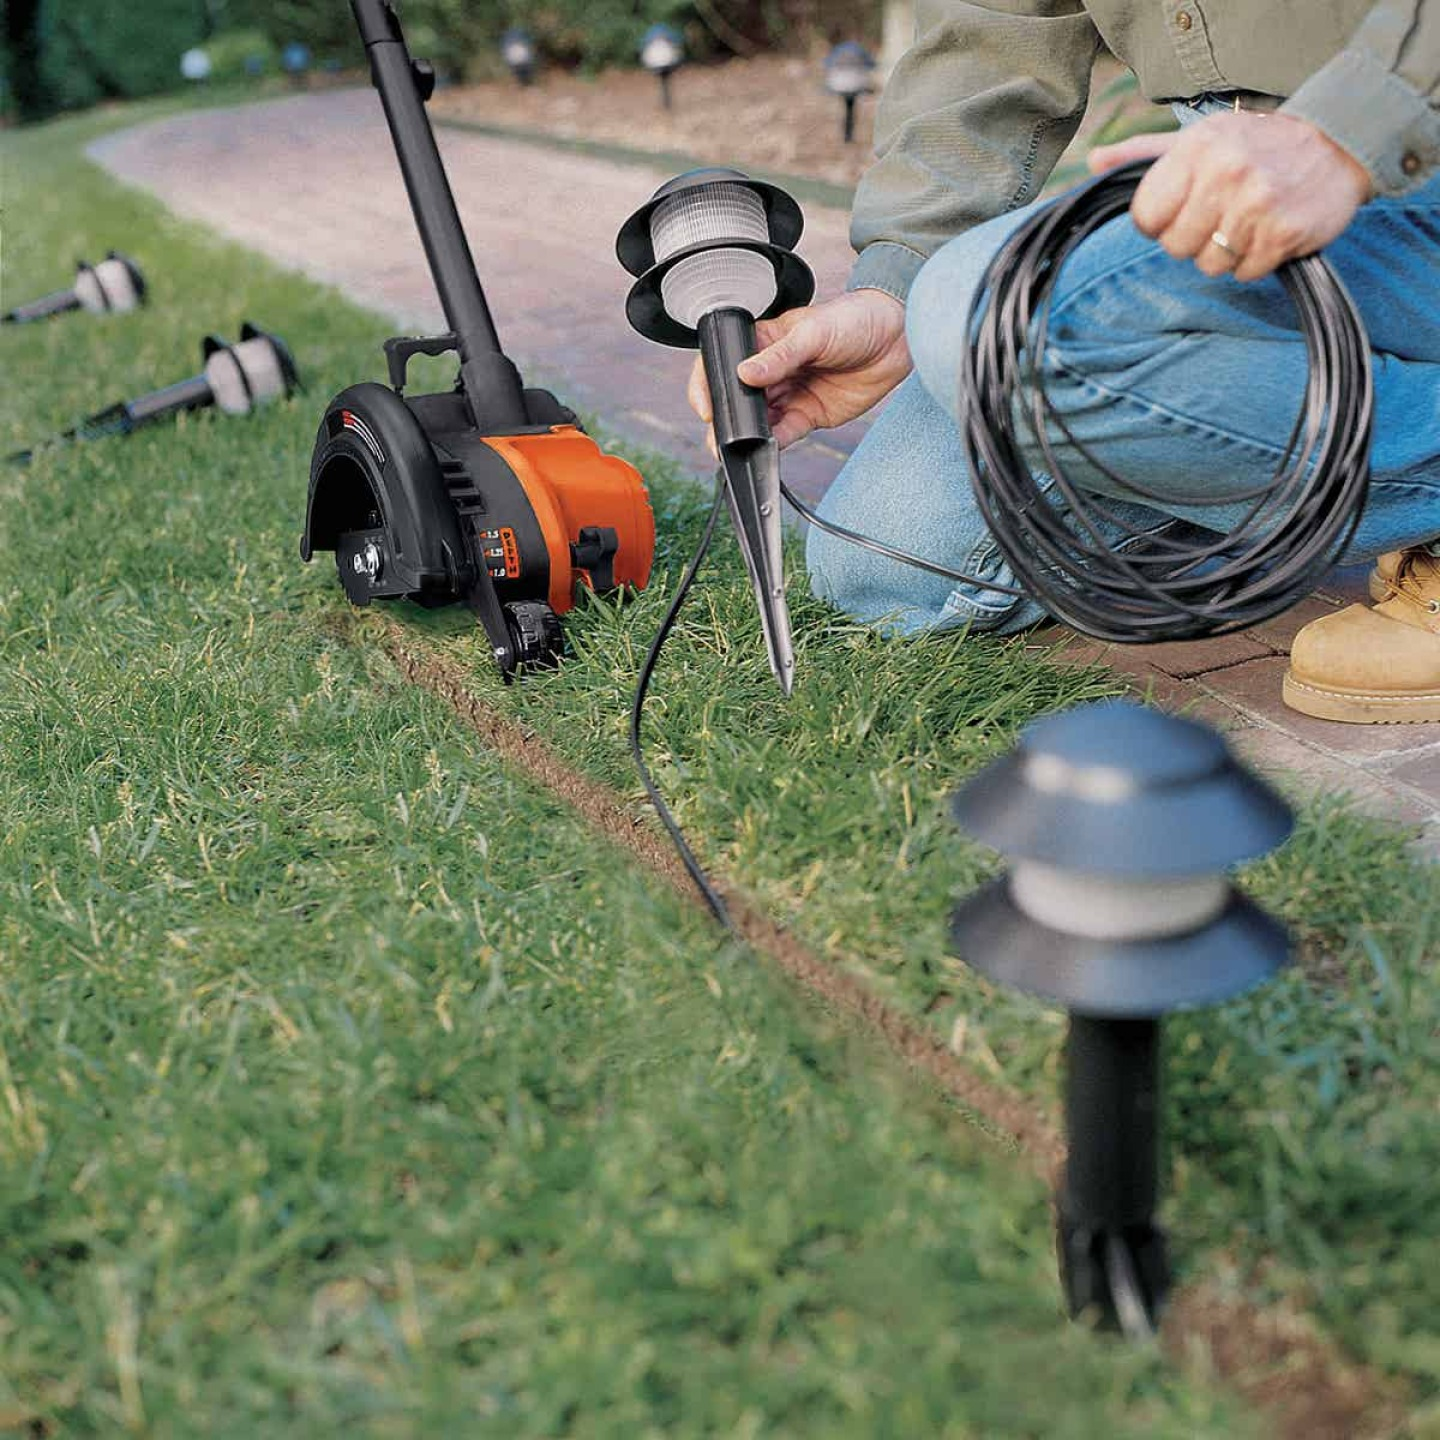 Black & Decker 2-In-1 7-1/2 In. 11-Amp Corded Electric Lawn Edger & Trencher Image 3